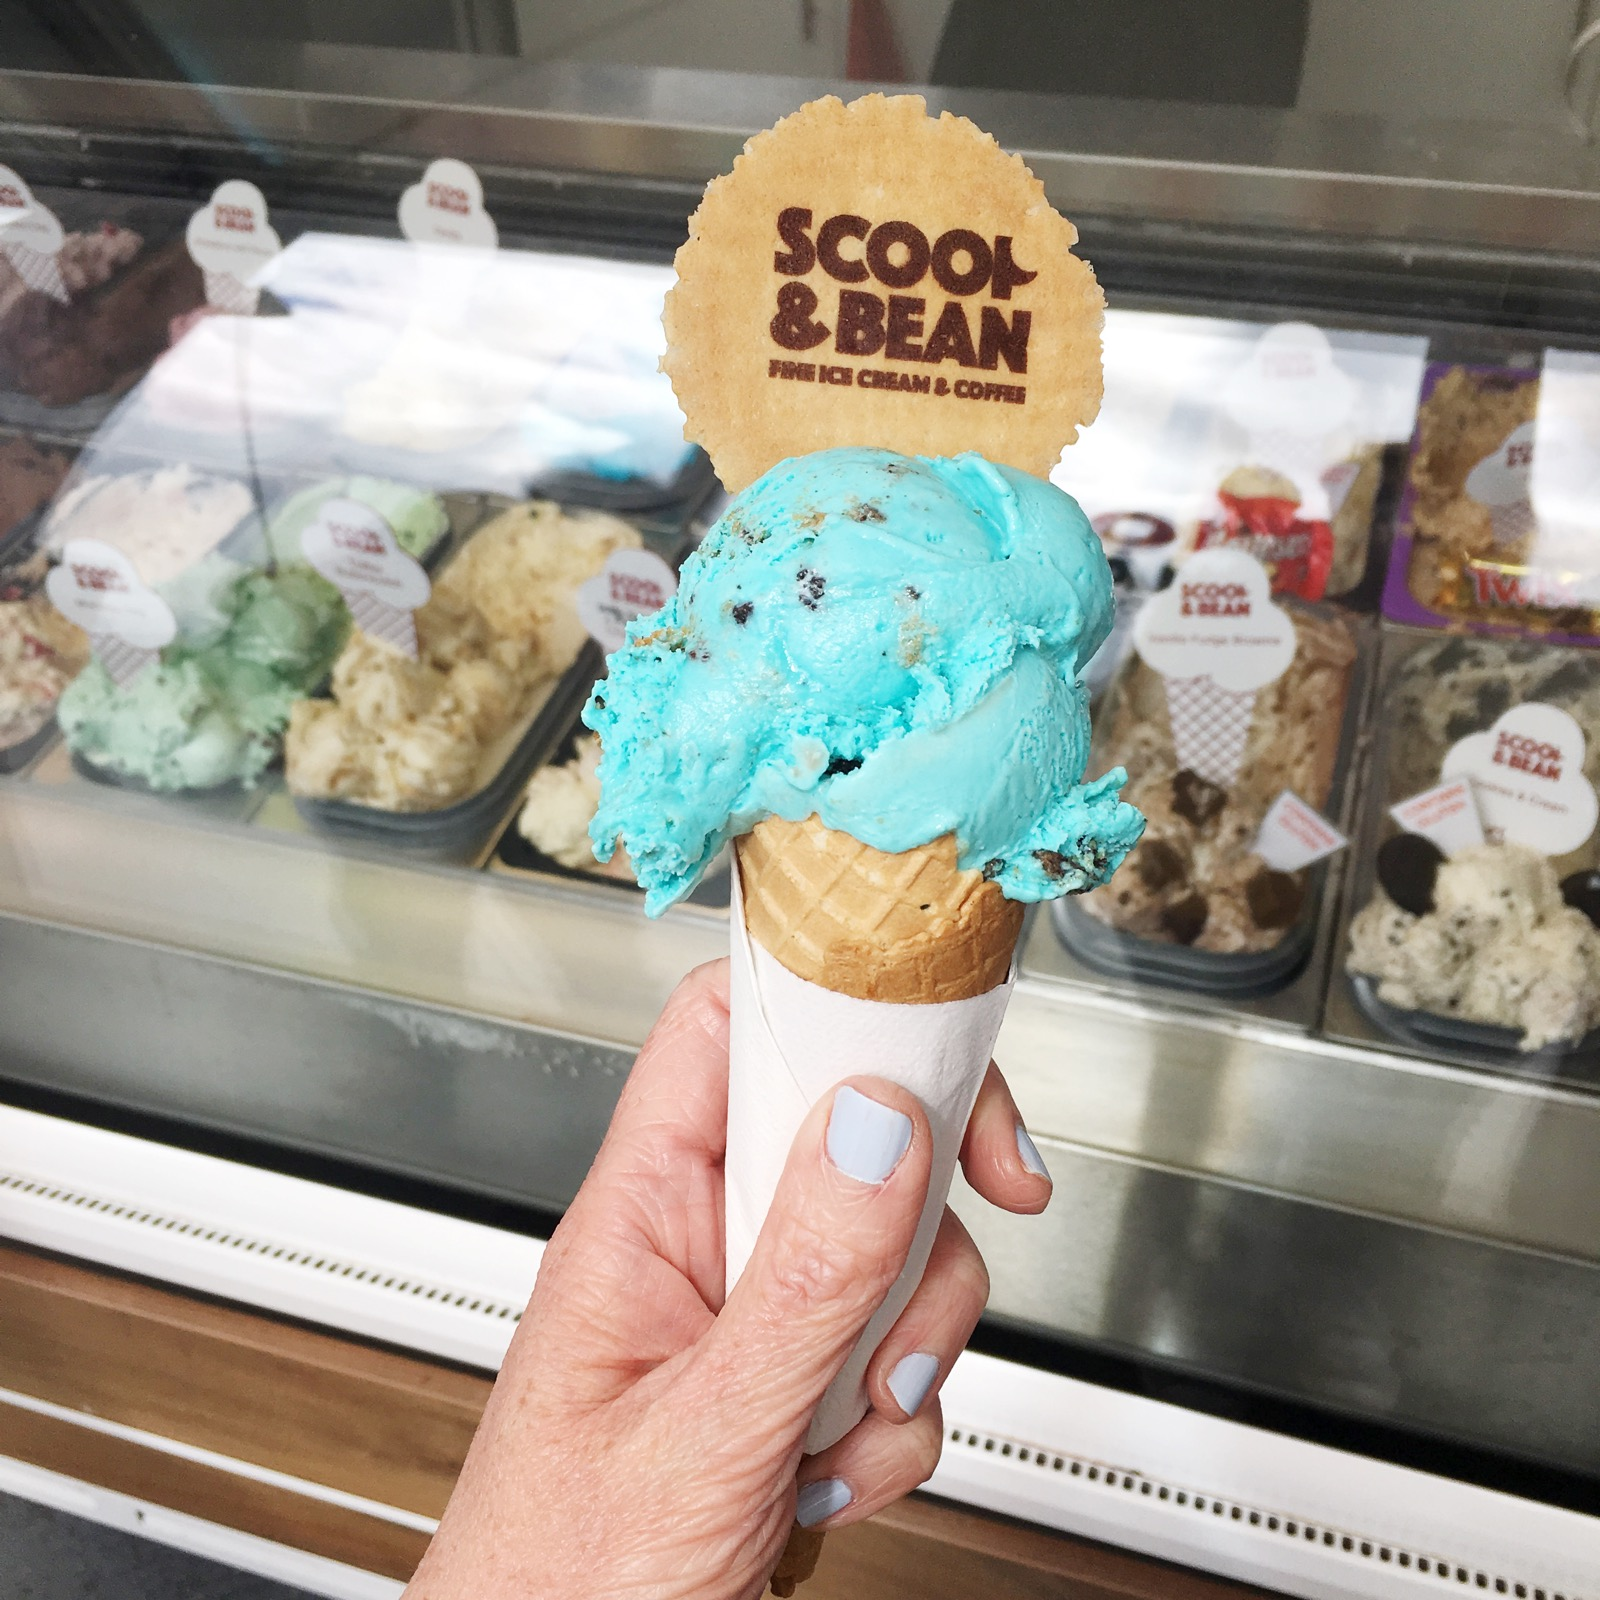 Best Ice Cream Parlours in the North East - Scoop and Bean South Shields